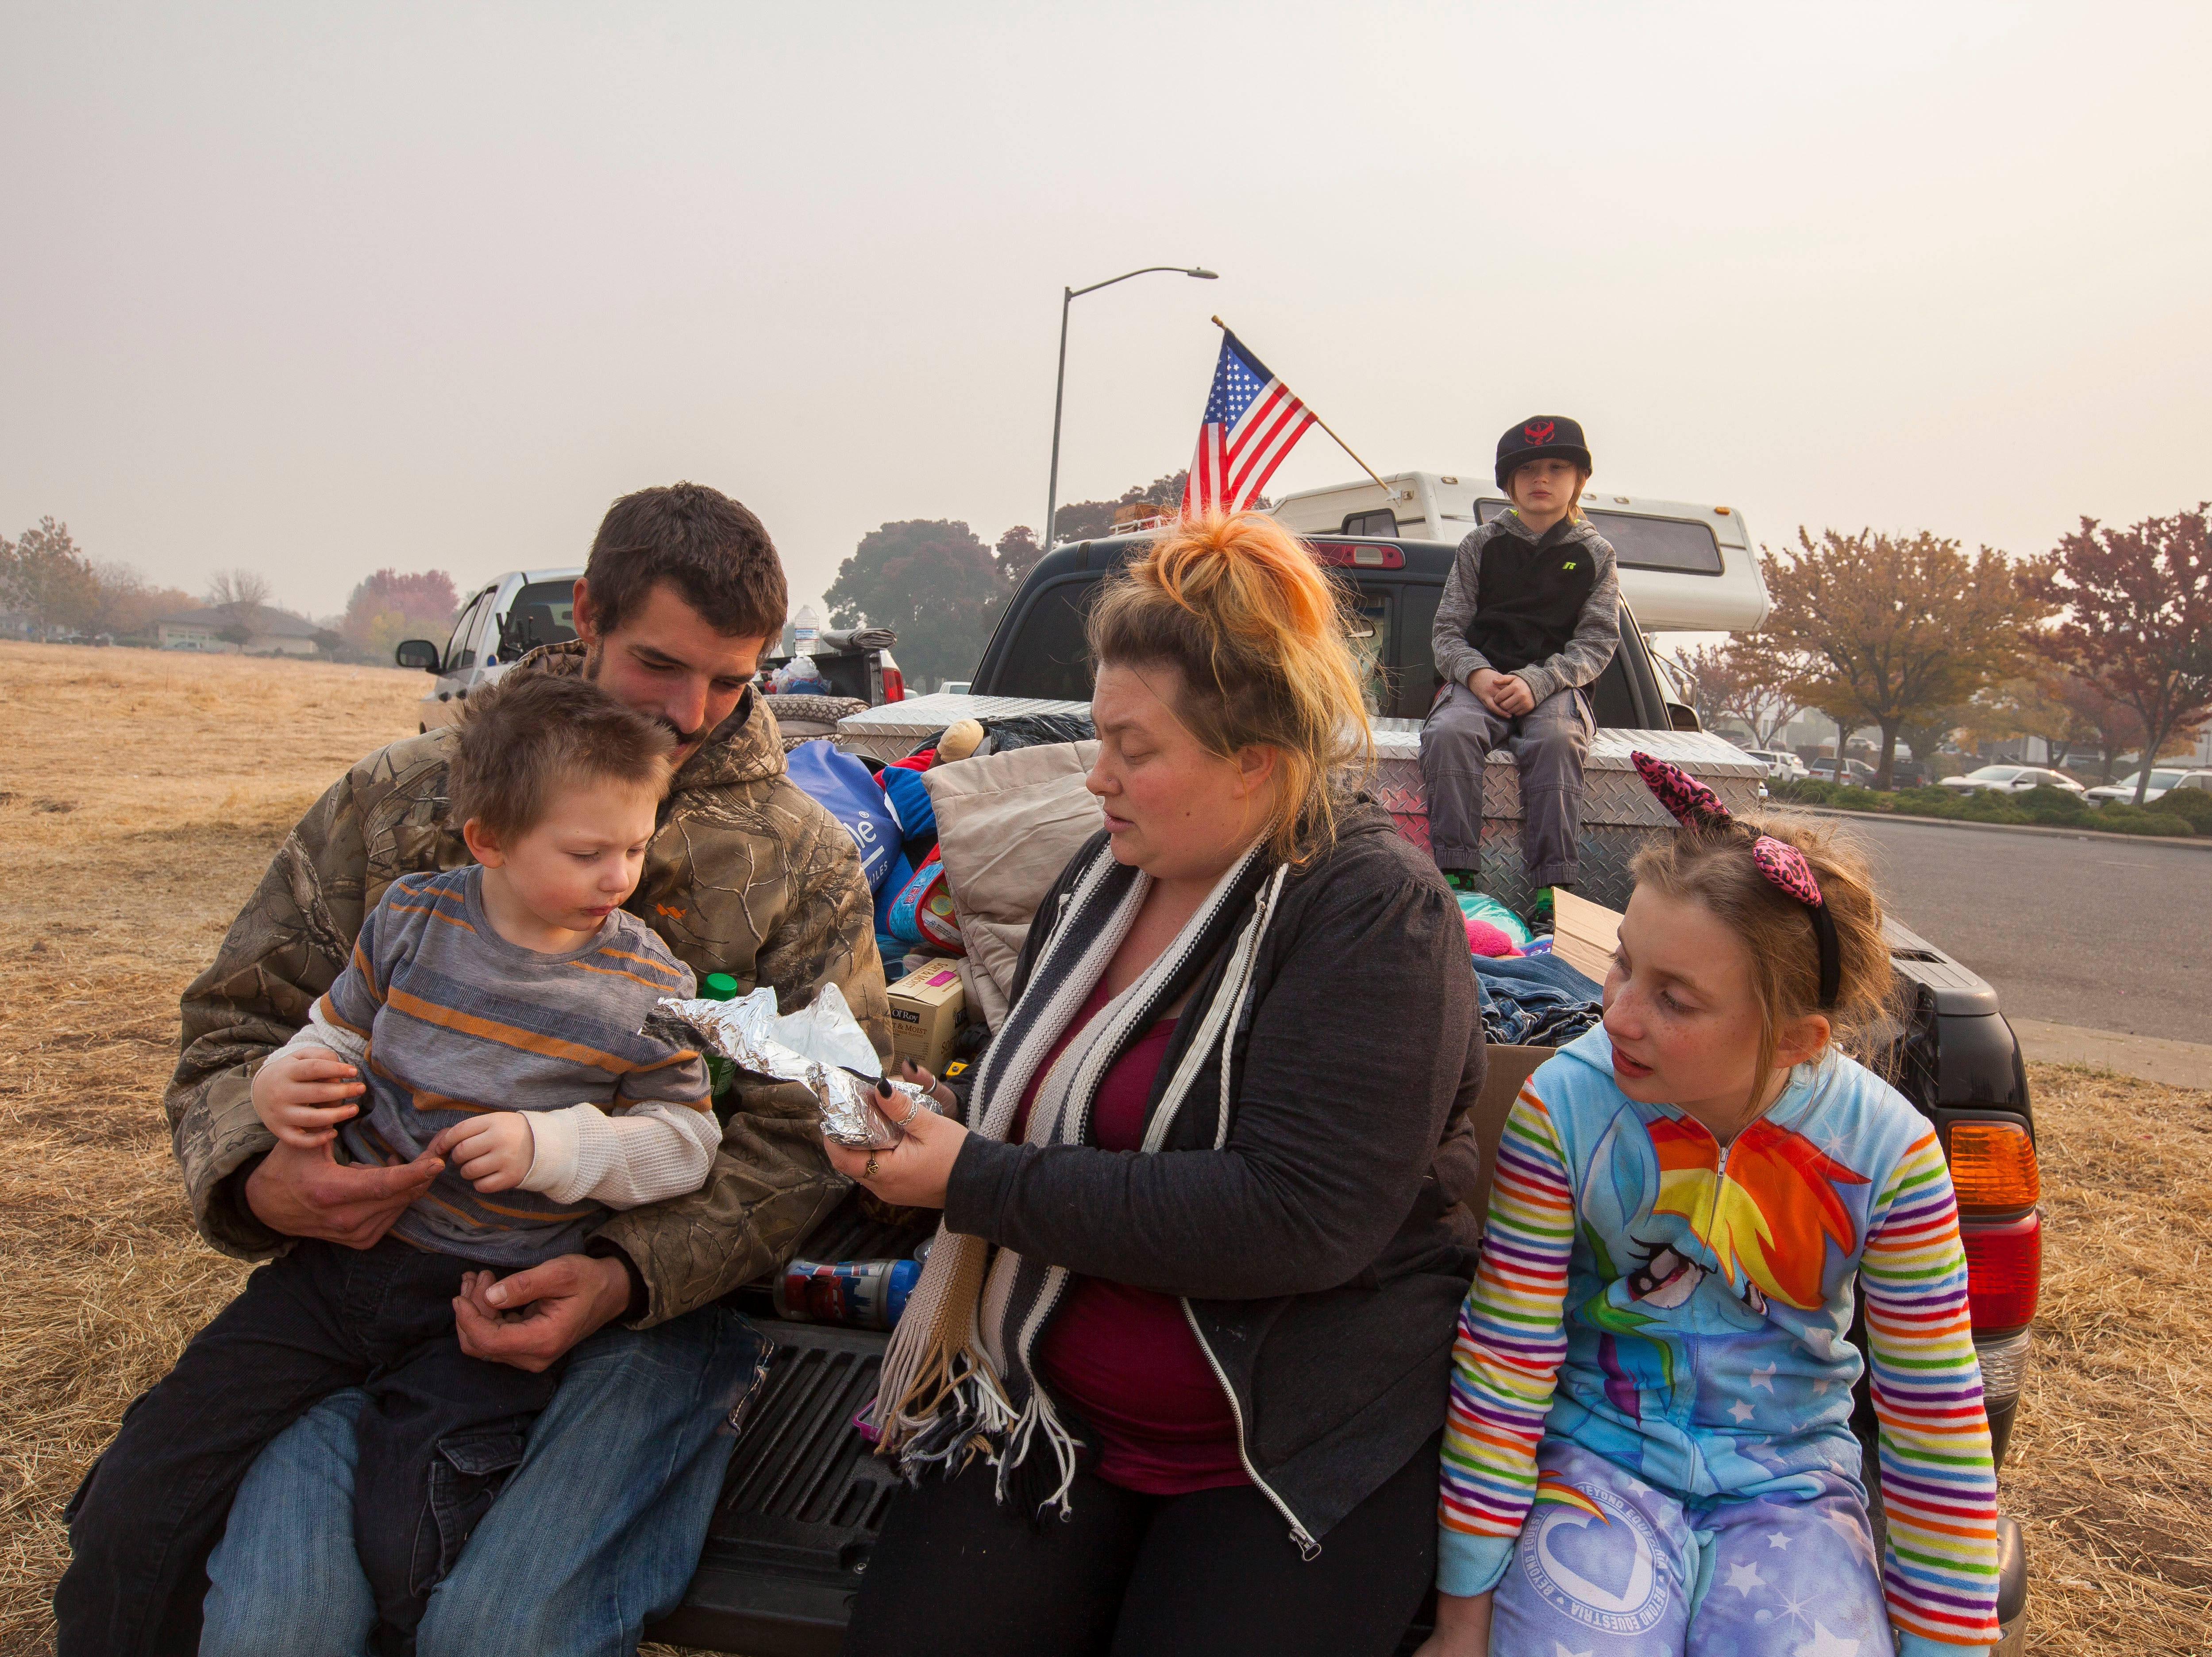 Ryan Belcher, left holds 4-year-old Bentley as Casey gives him some breakfast while their other children Zoeylee, 10 and Michael, 9, sit on the bed of a pick-up truck that Ryan's boss has loaned them. The Belcher family lost their home and vehicles in the Camp Fire. The children sleep in the truck at night and the parents share a small tent in a field next to the Walmart in Chico, CA.